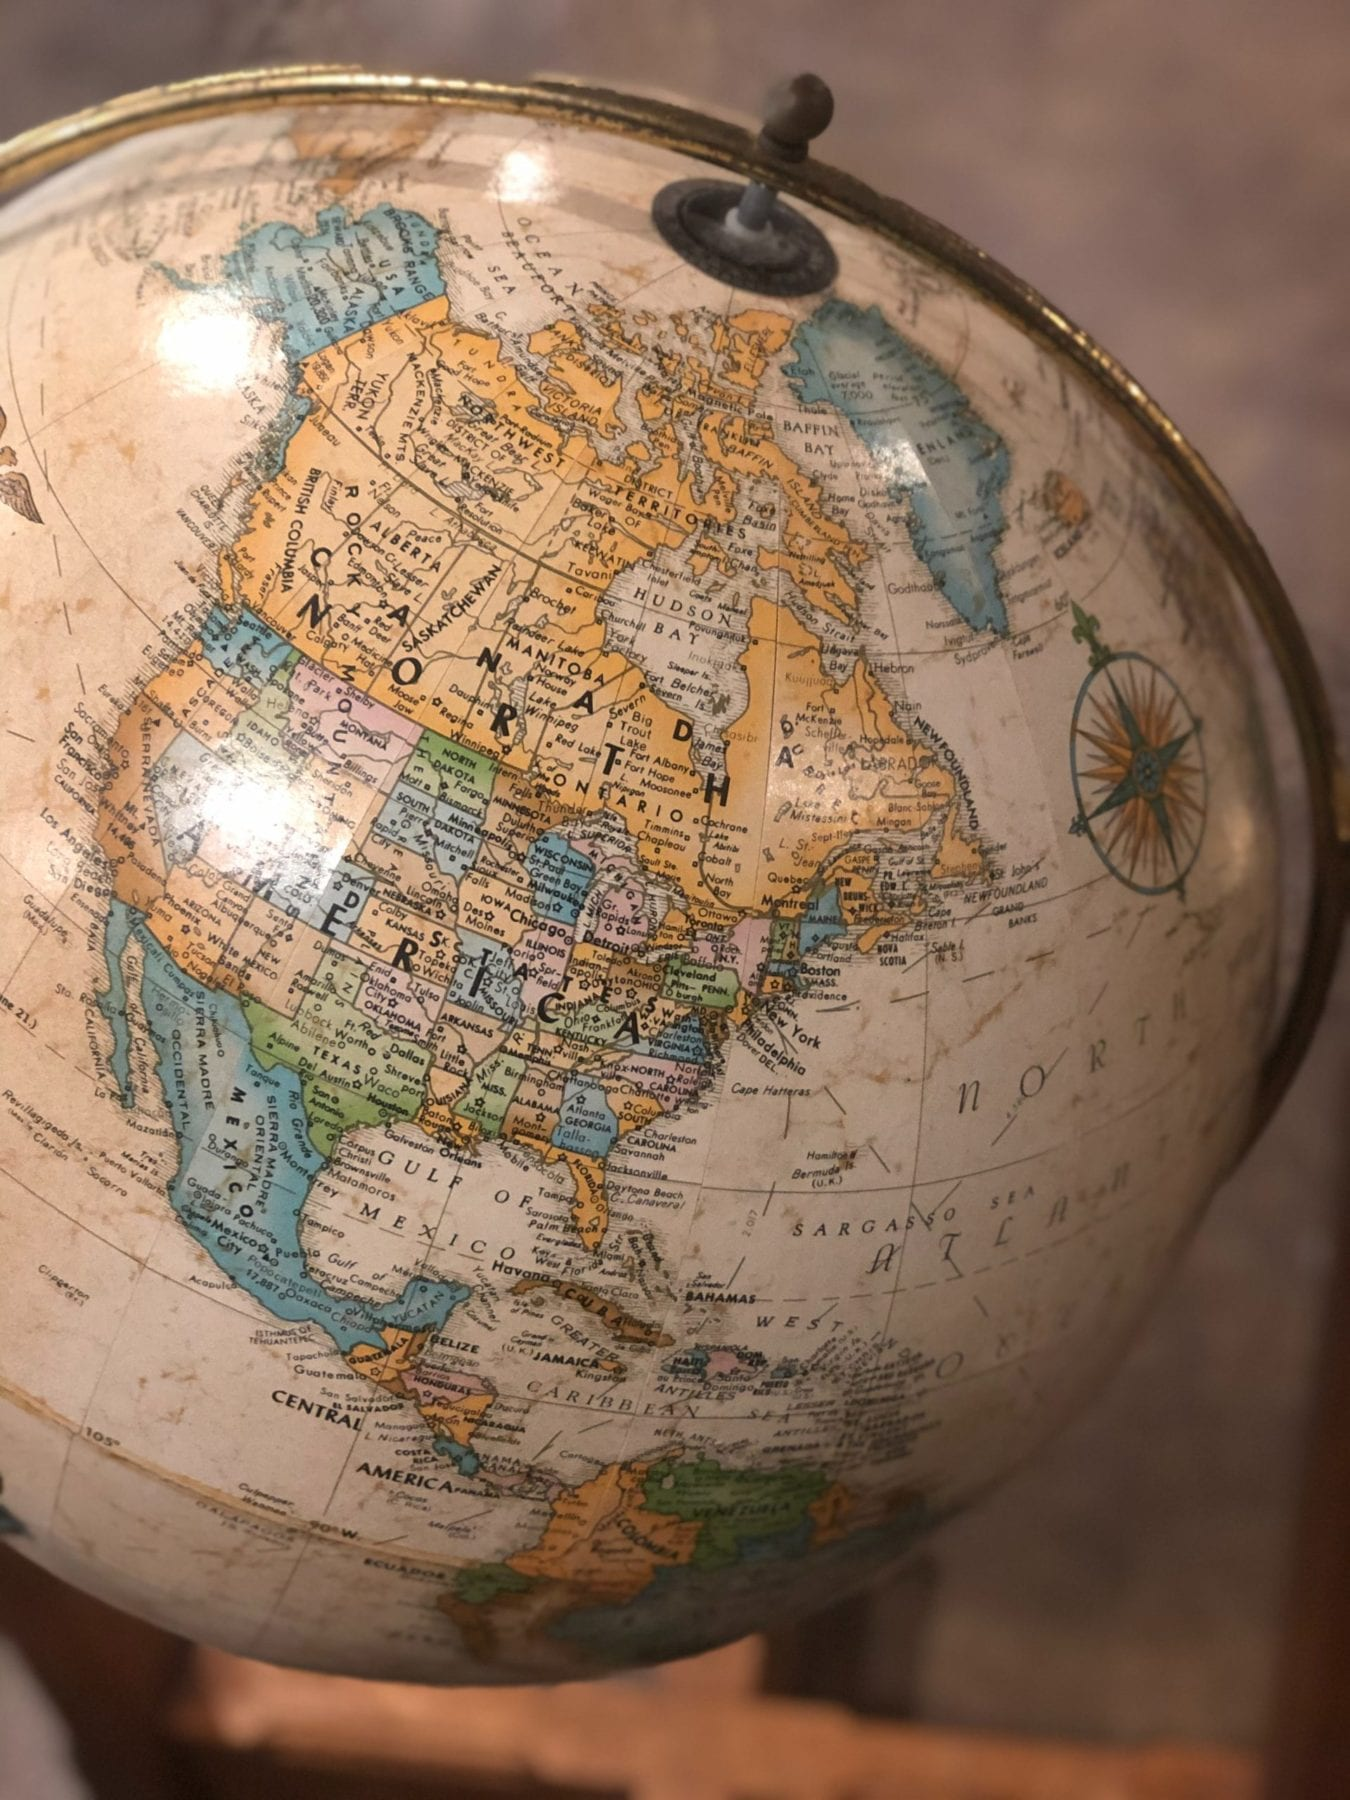 United States, European History course content offered from Virginia Tech